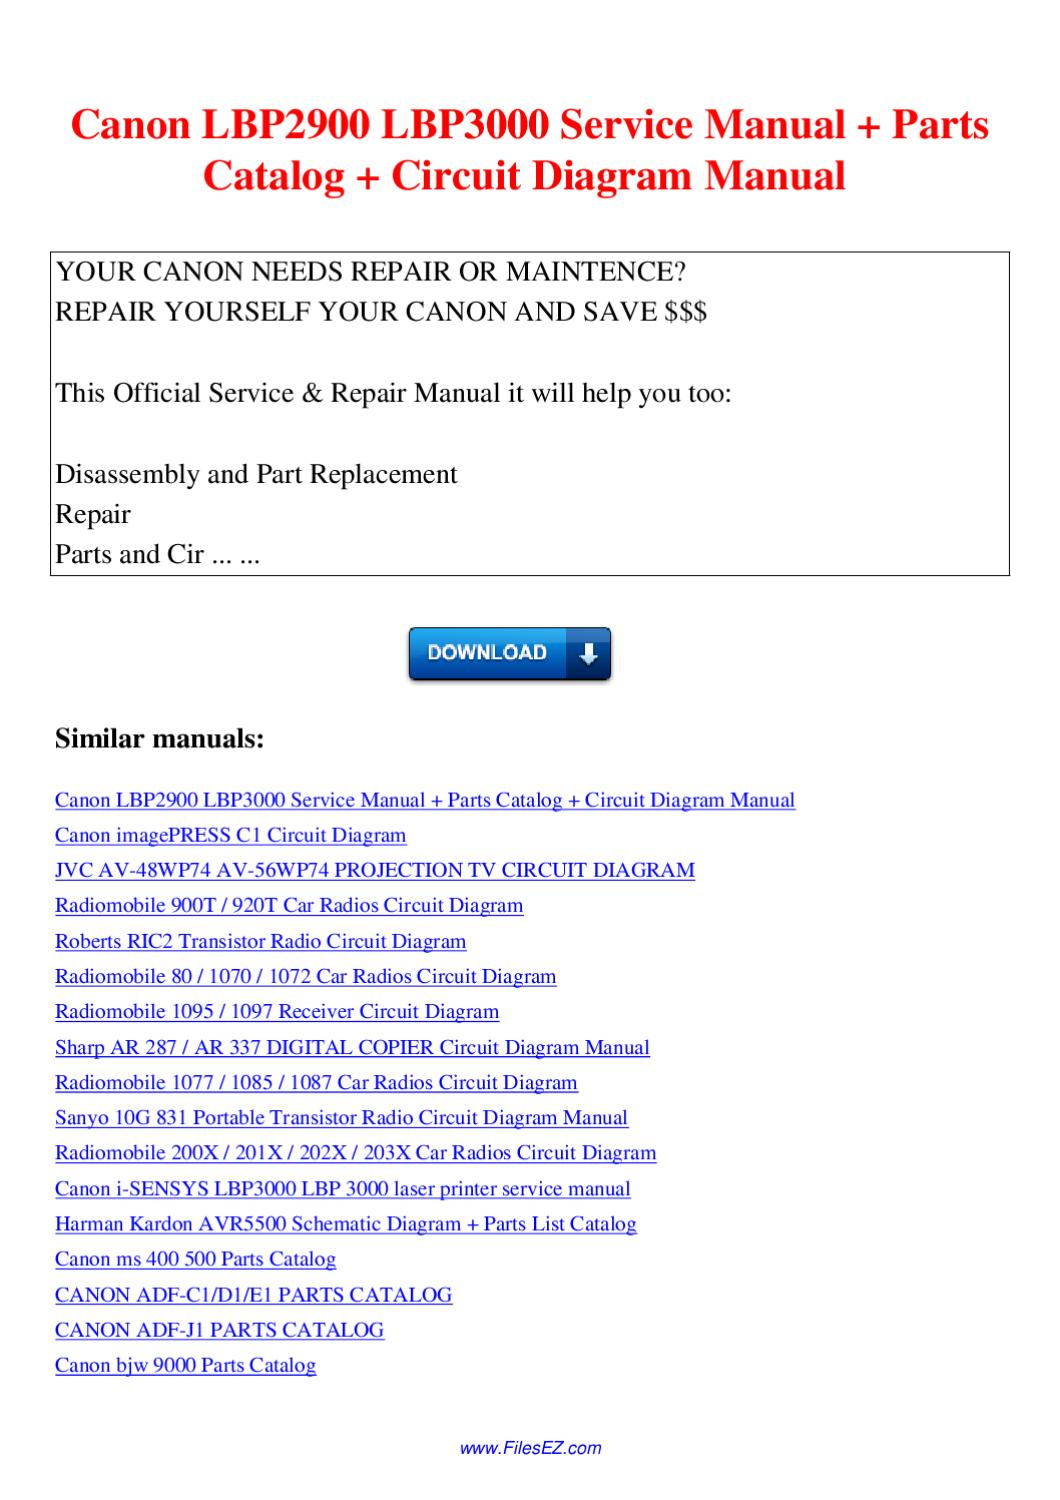 Canon Lbp2900 Lbp3000 Service Manual Parts Catalog Circuit Diagram Manual By Nana Hong